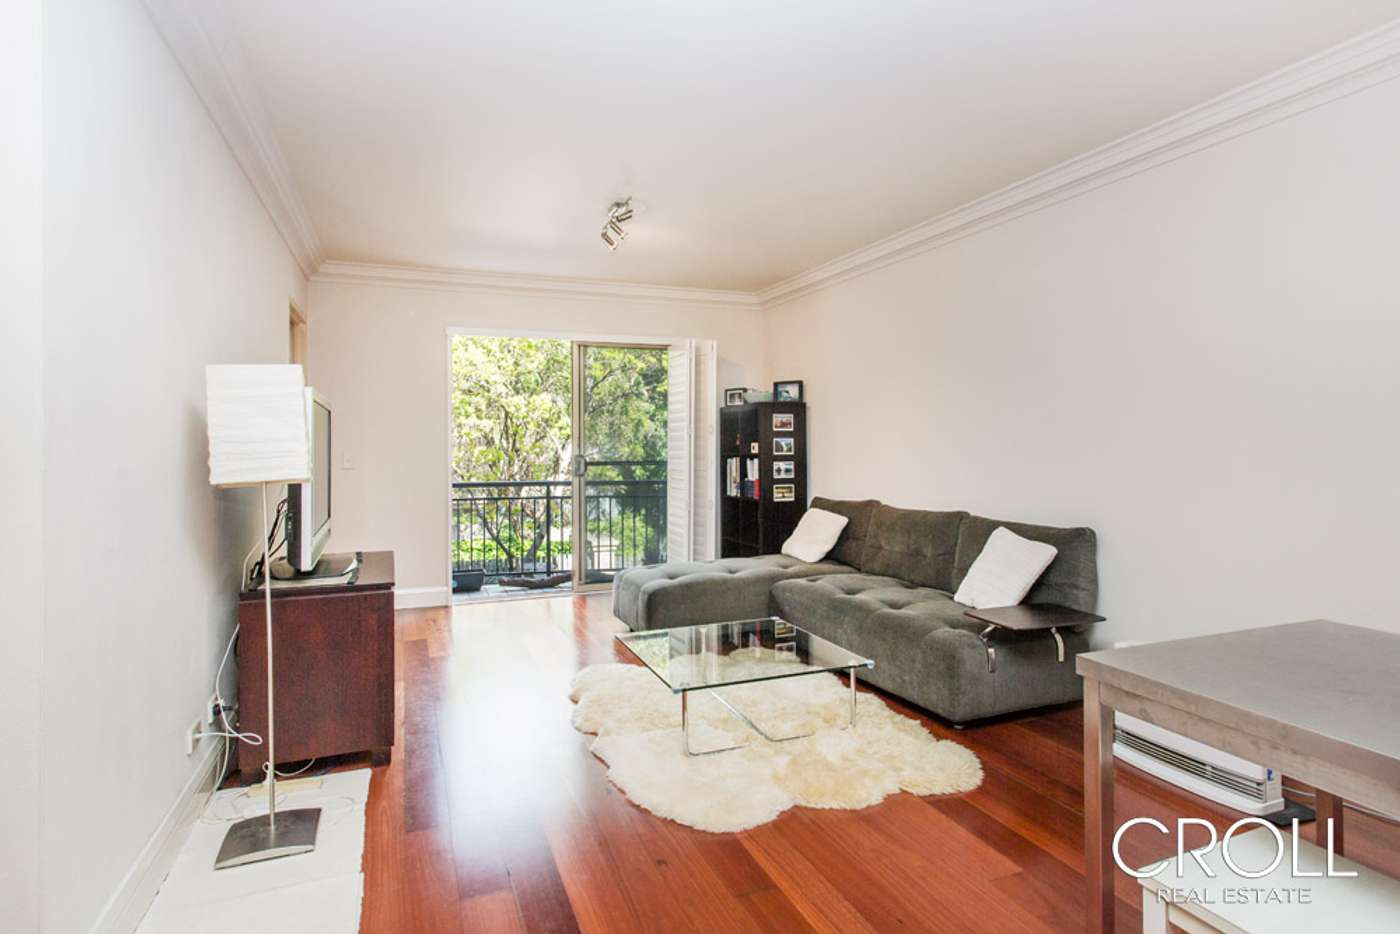 Main view of Homely apartment listing, 7/92-96 Parraween St, Cremorne NSW 2090